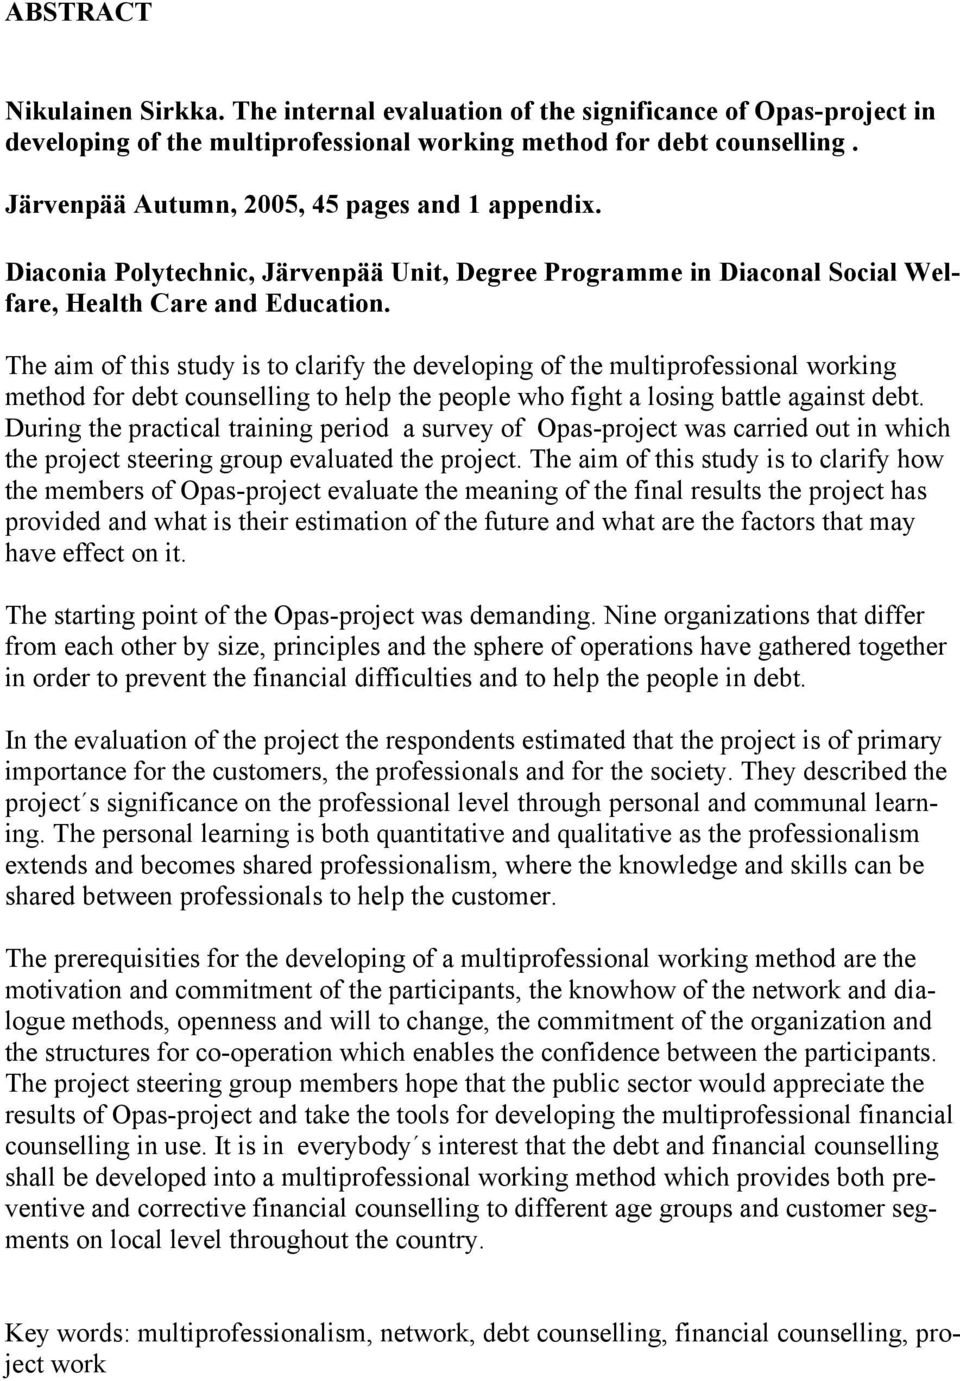 The aim of this study is to clarify the developing of the multiprofessional working method for debt counselling to help the people who fight a losing battle against debt.